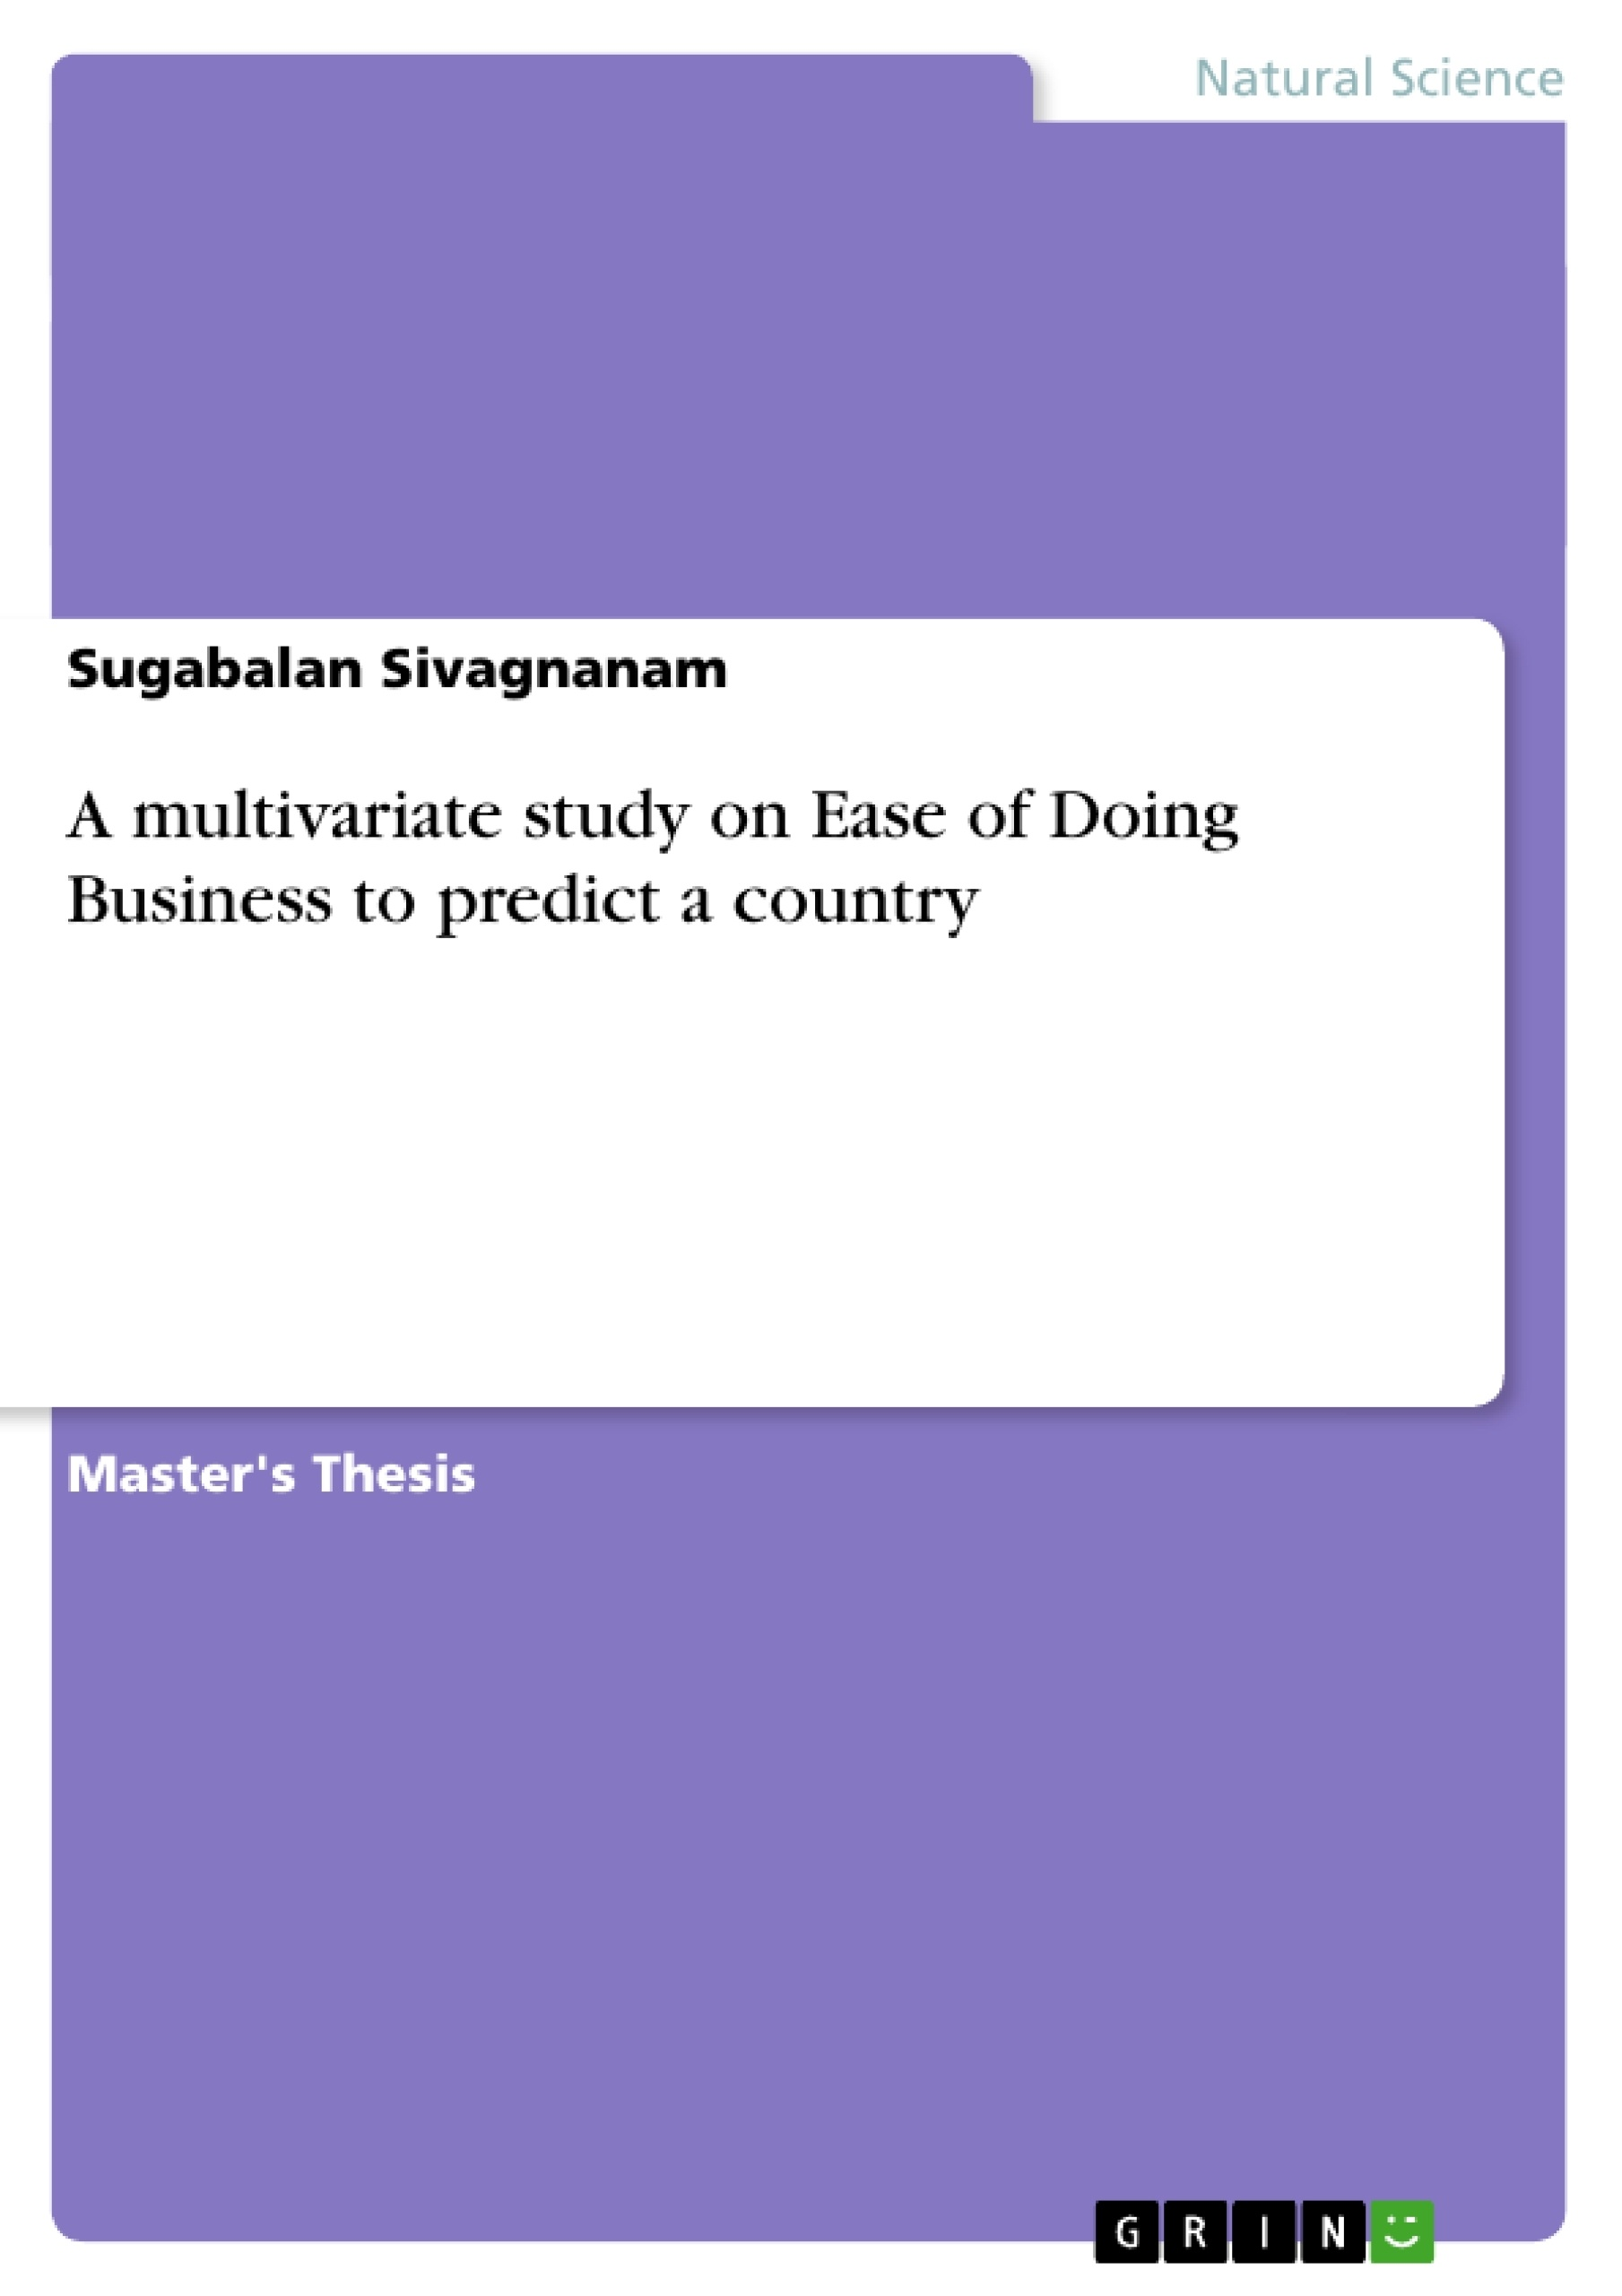 Title: A multivariate study on Ease of Doing Business to predict a country